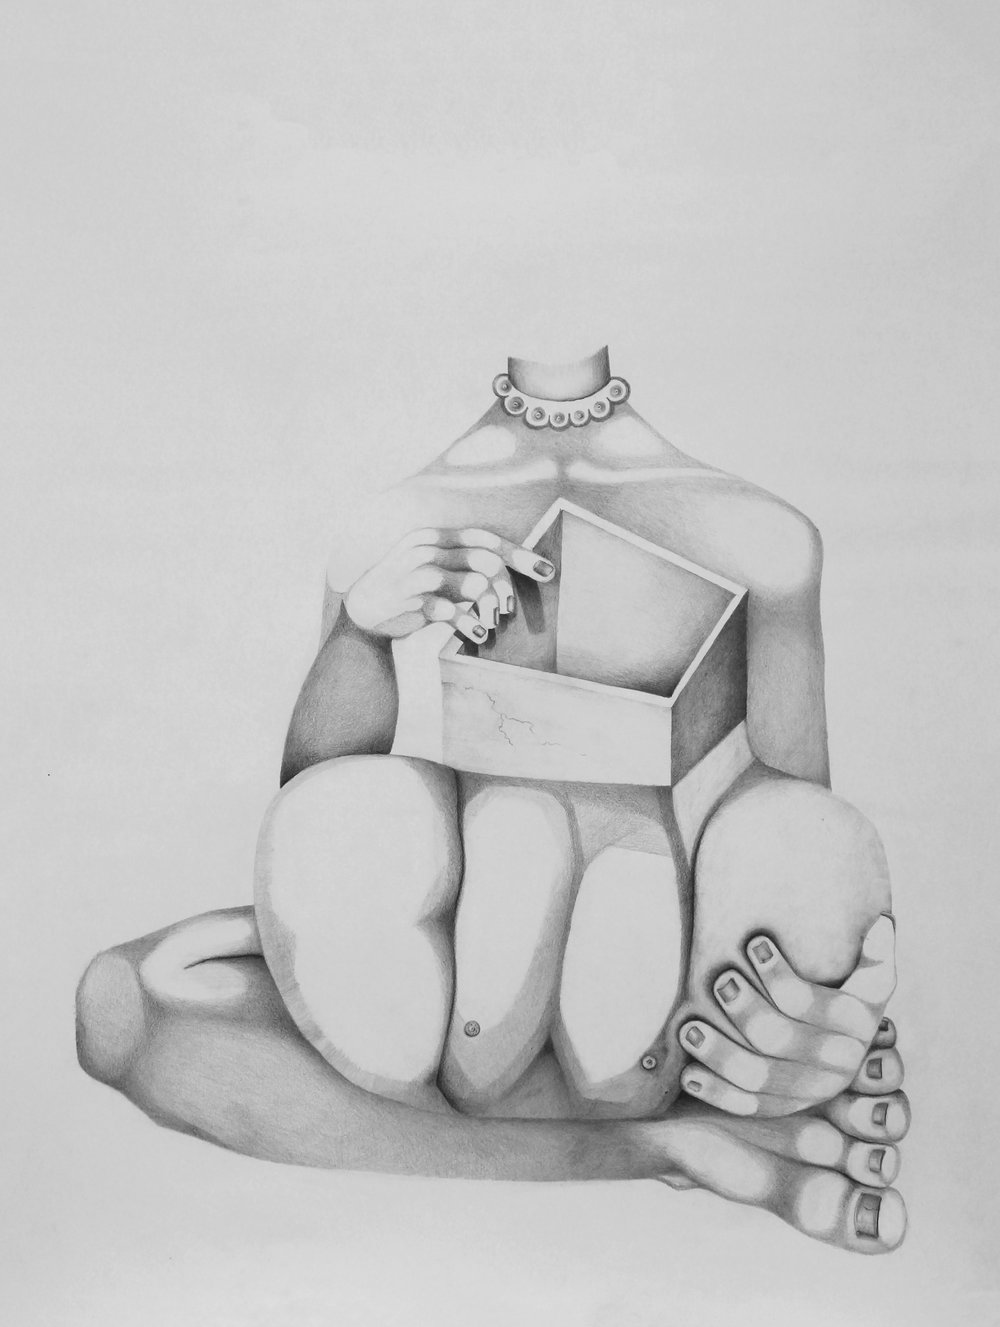 Graphite pencil on paper. 2018